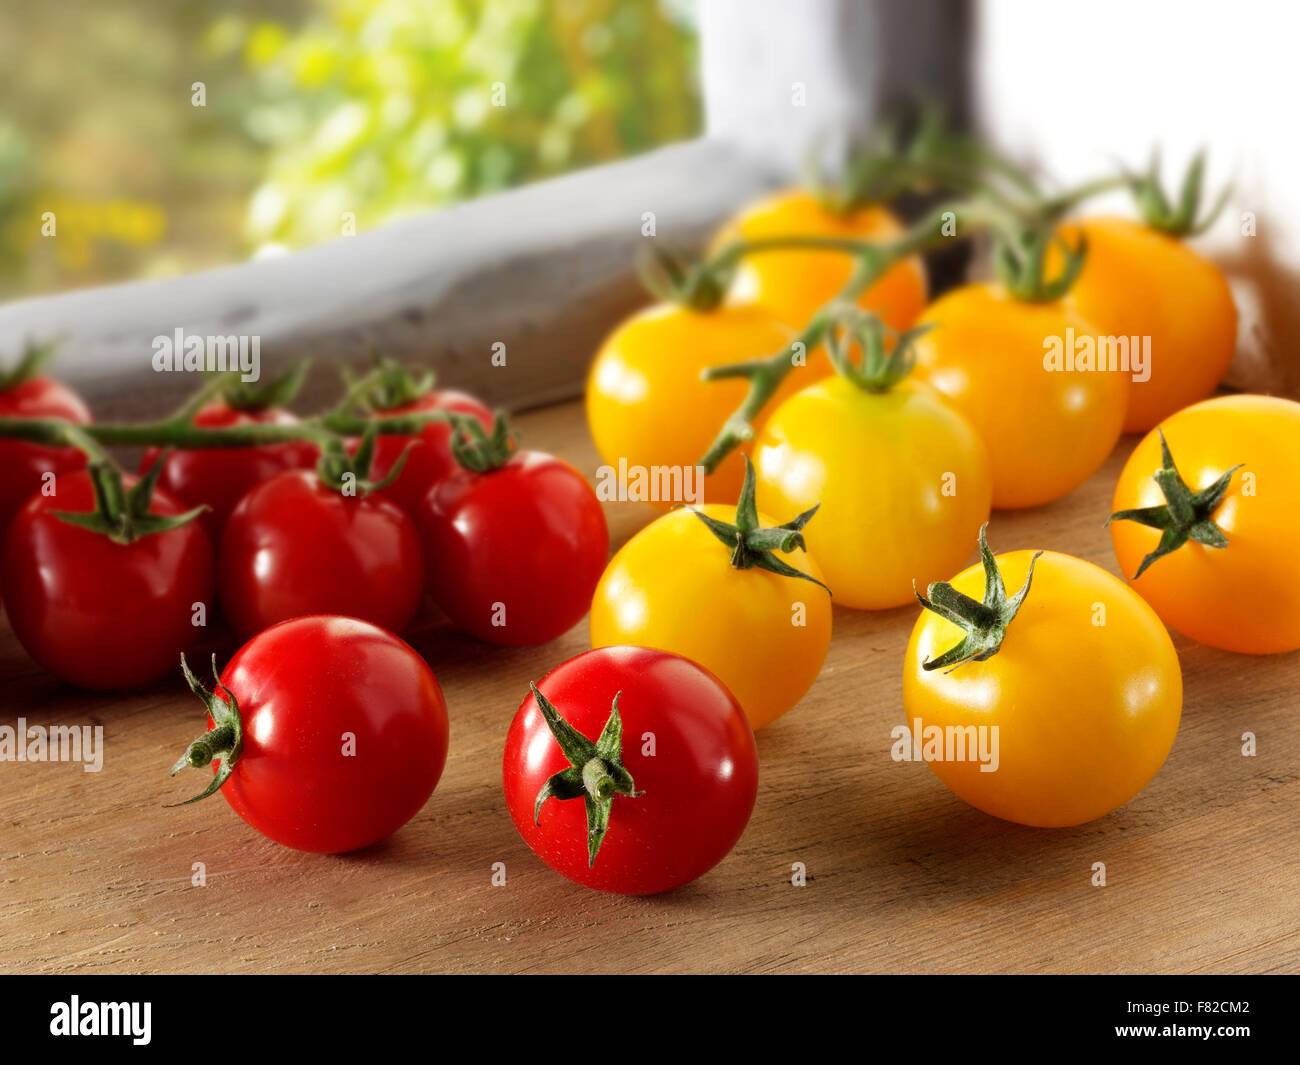 Mixed fresh picked yellow and red plum tomatoes - Stock Image